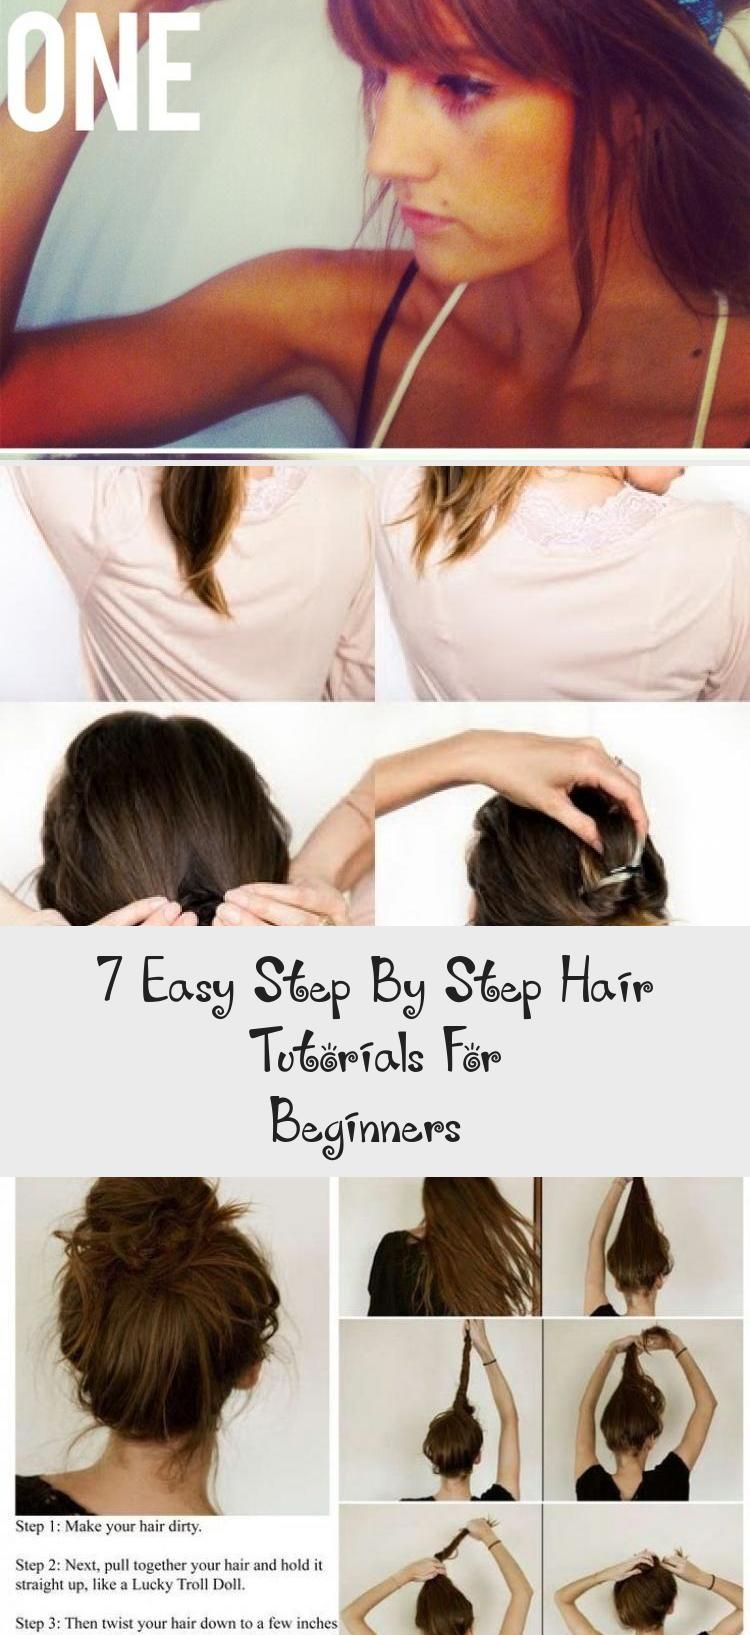 7 Easy Step By Step Hair Tutorials For Beginners Hairstyles In 2020 Hair Tutorial Cool Easy Hairstyles Ponytail Hairstyles Tutorial